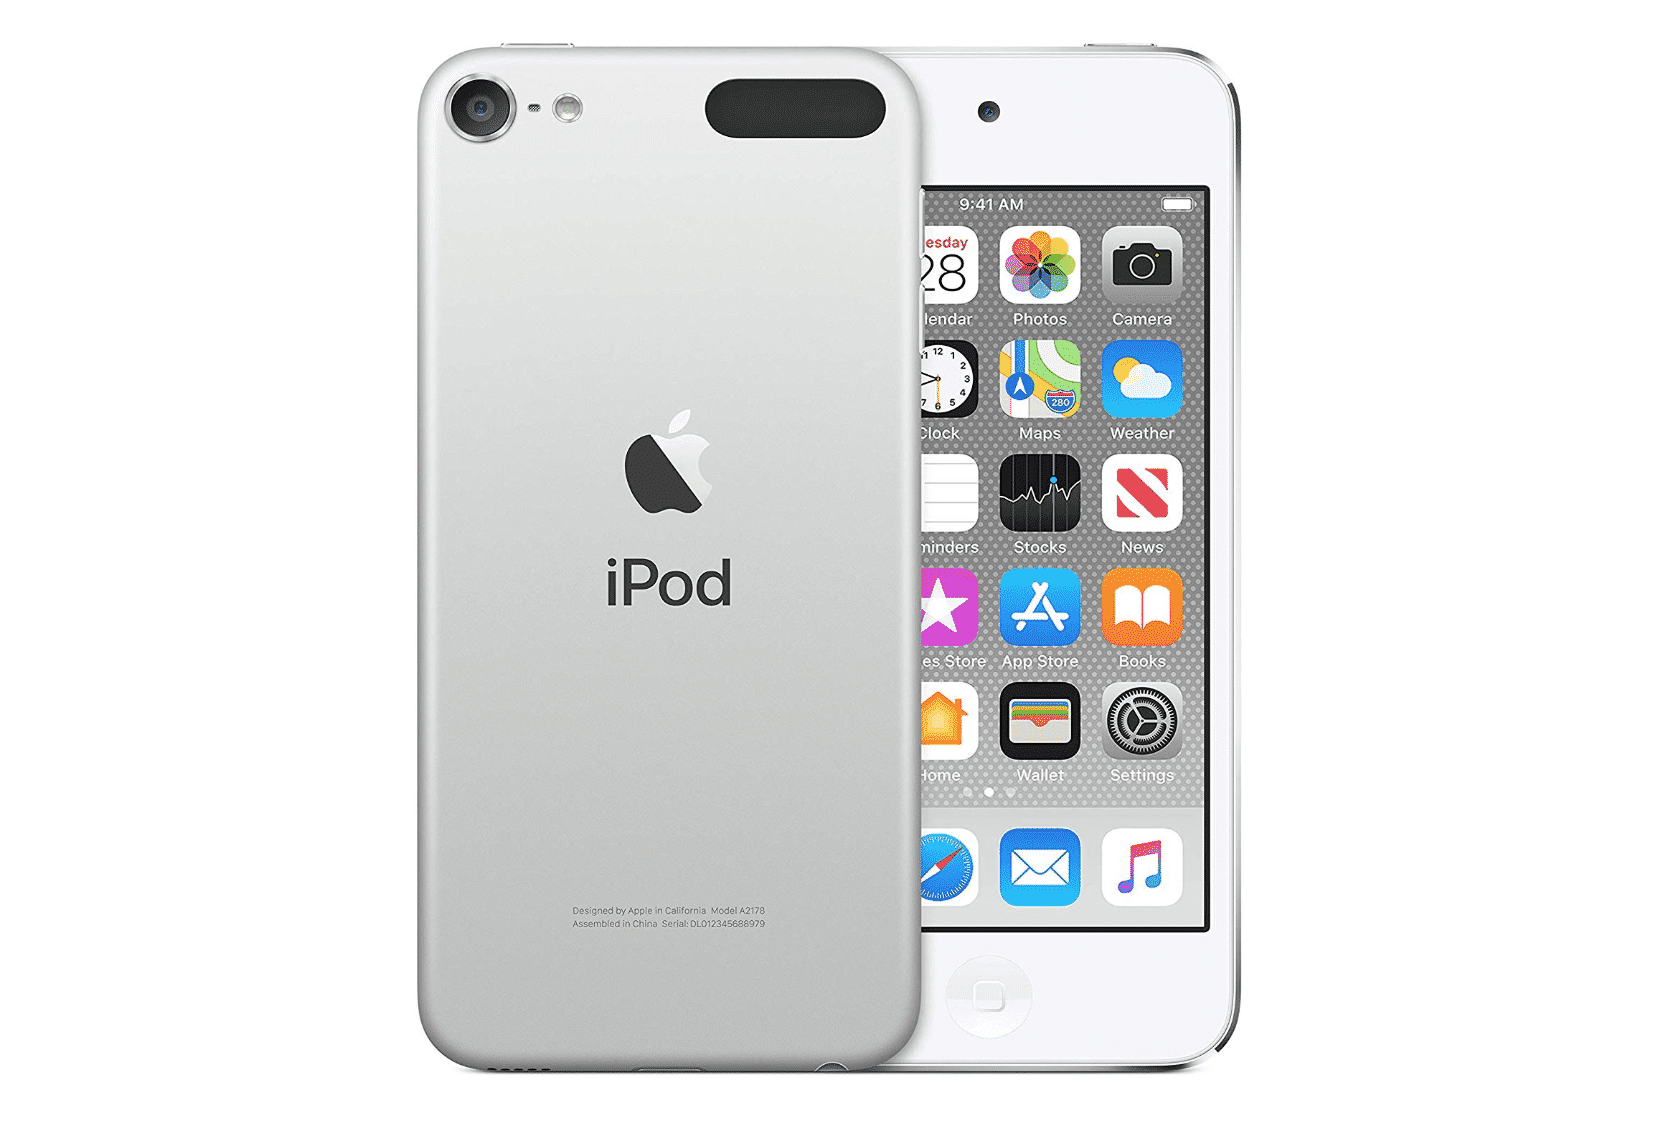 Get Your Mitts on the latest iPod Touch, Now Only $179 on Amazon